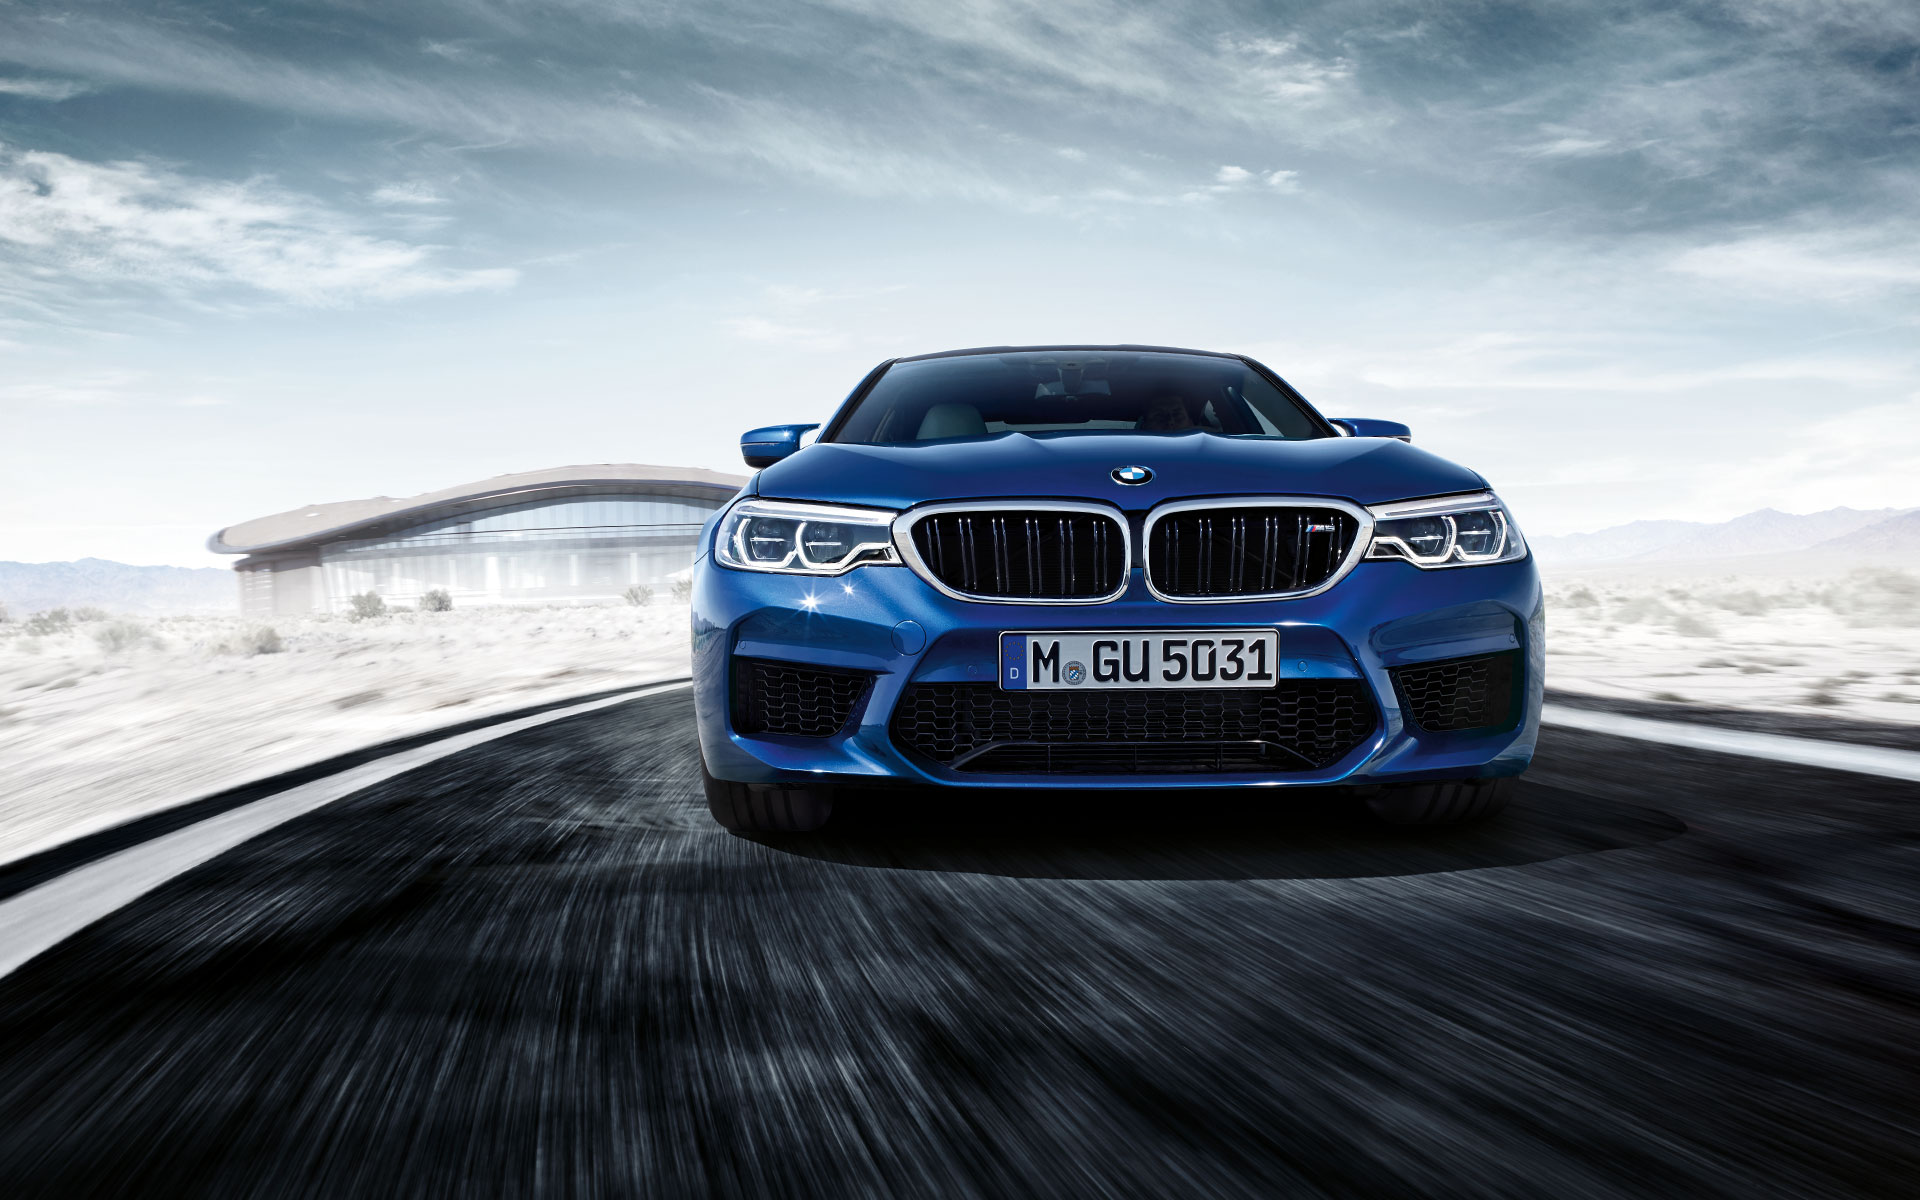 BMW M-Series Sedan blue: bumper perfection